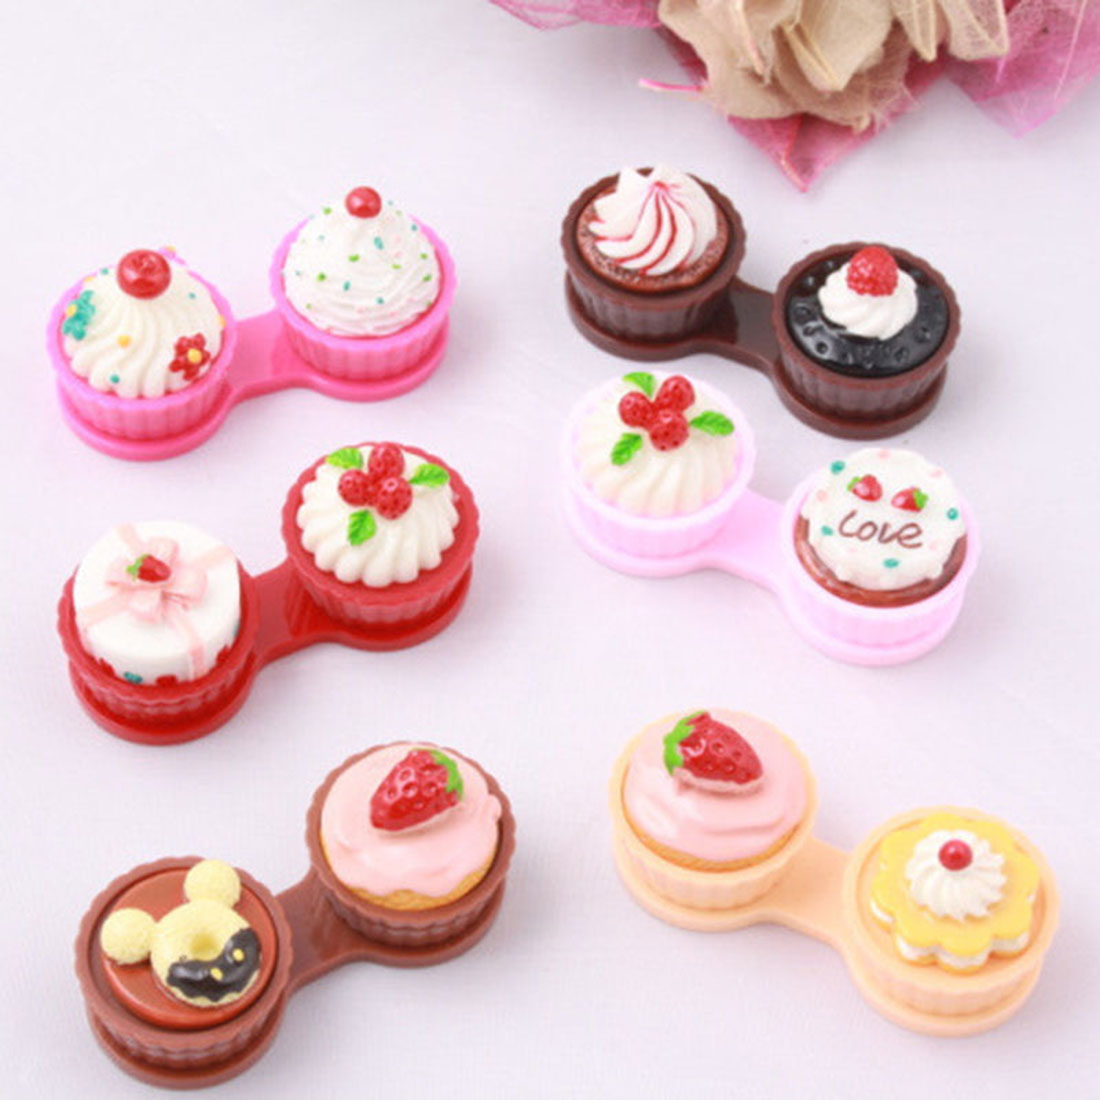 6 color Cute 1PCS Cartoon Cream Cake Glasses Double Contact Lenses Box Contact Lens Case For Eyes Care Kit Holder Container Gift